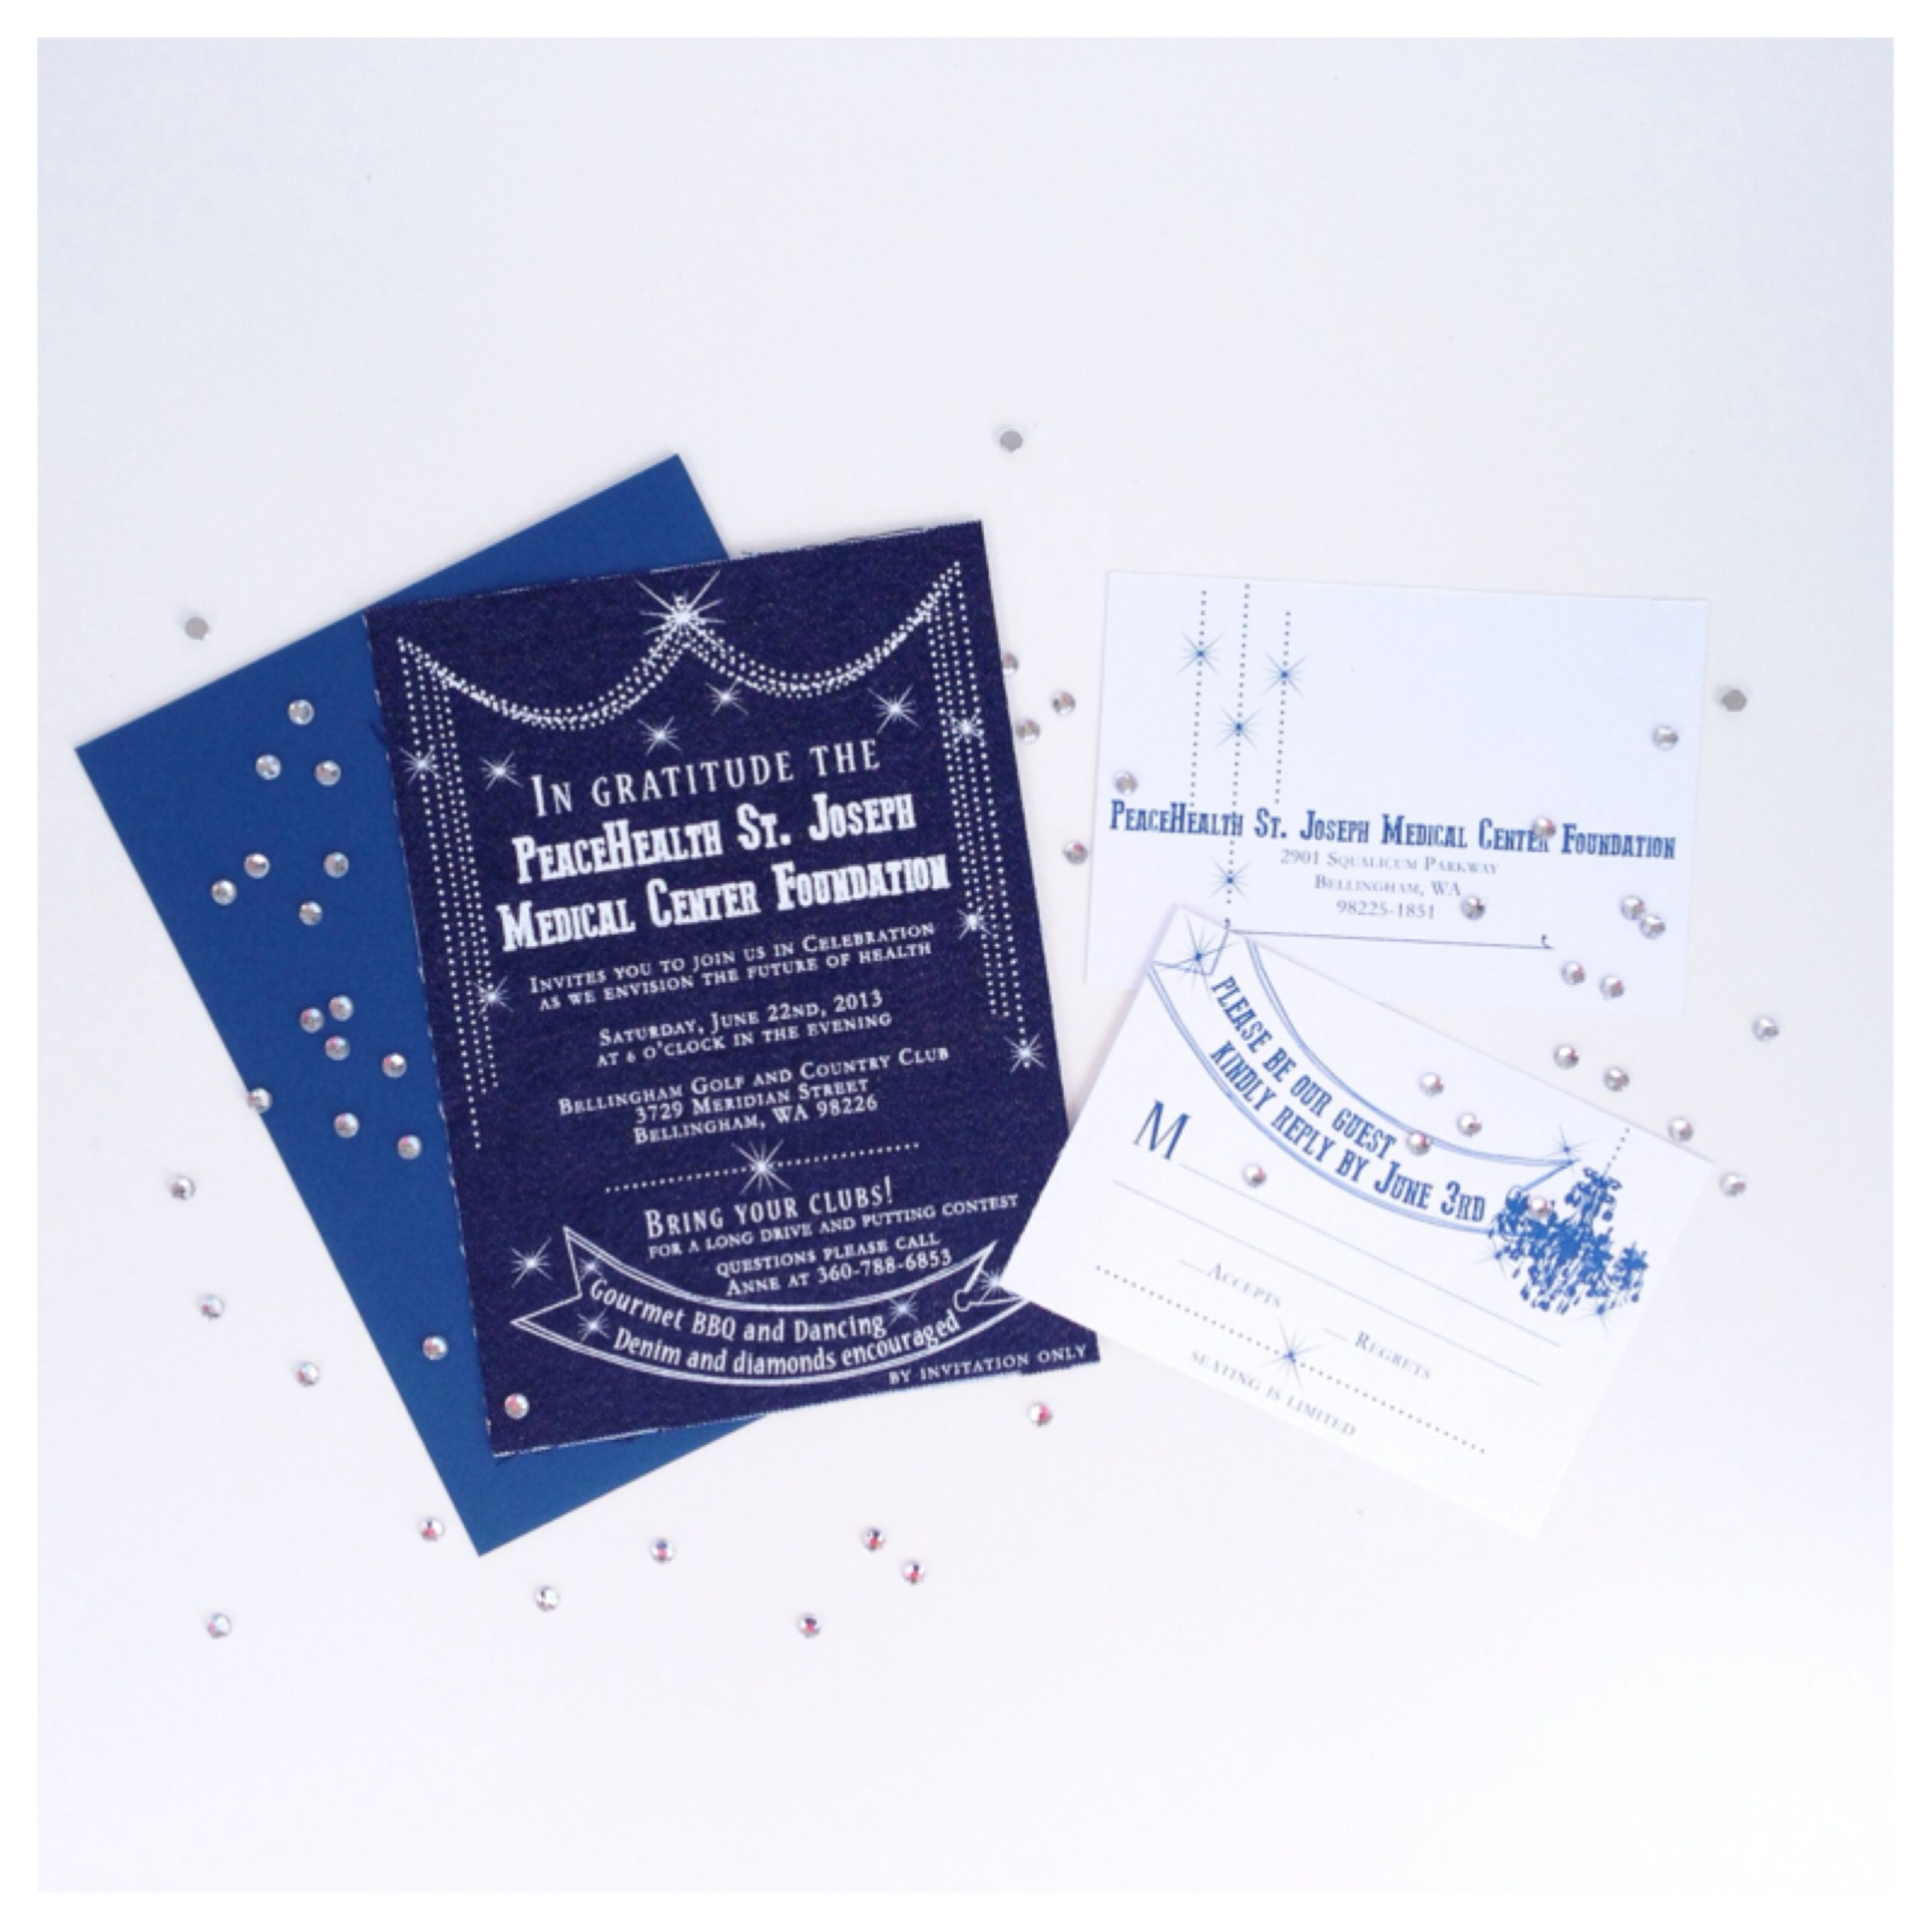 denim and diamonds invitation, screen printed invitations